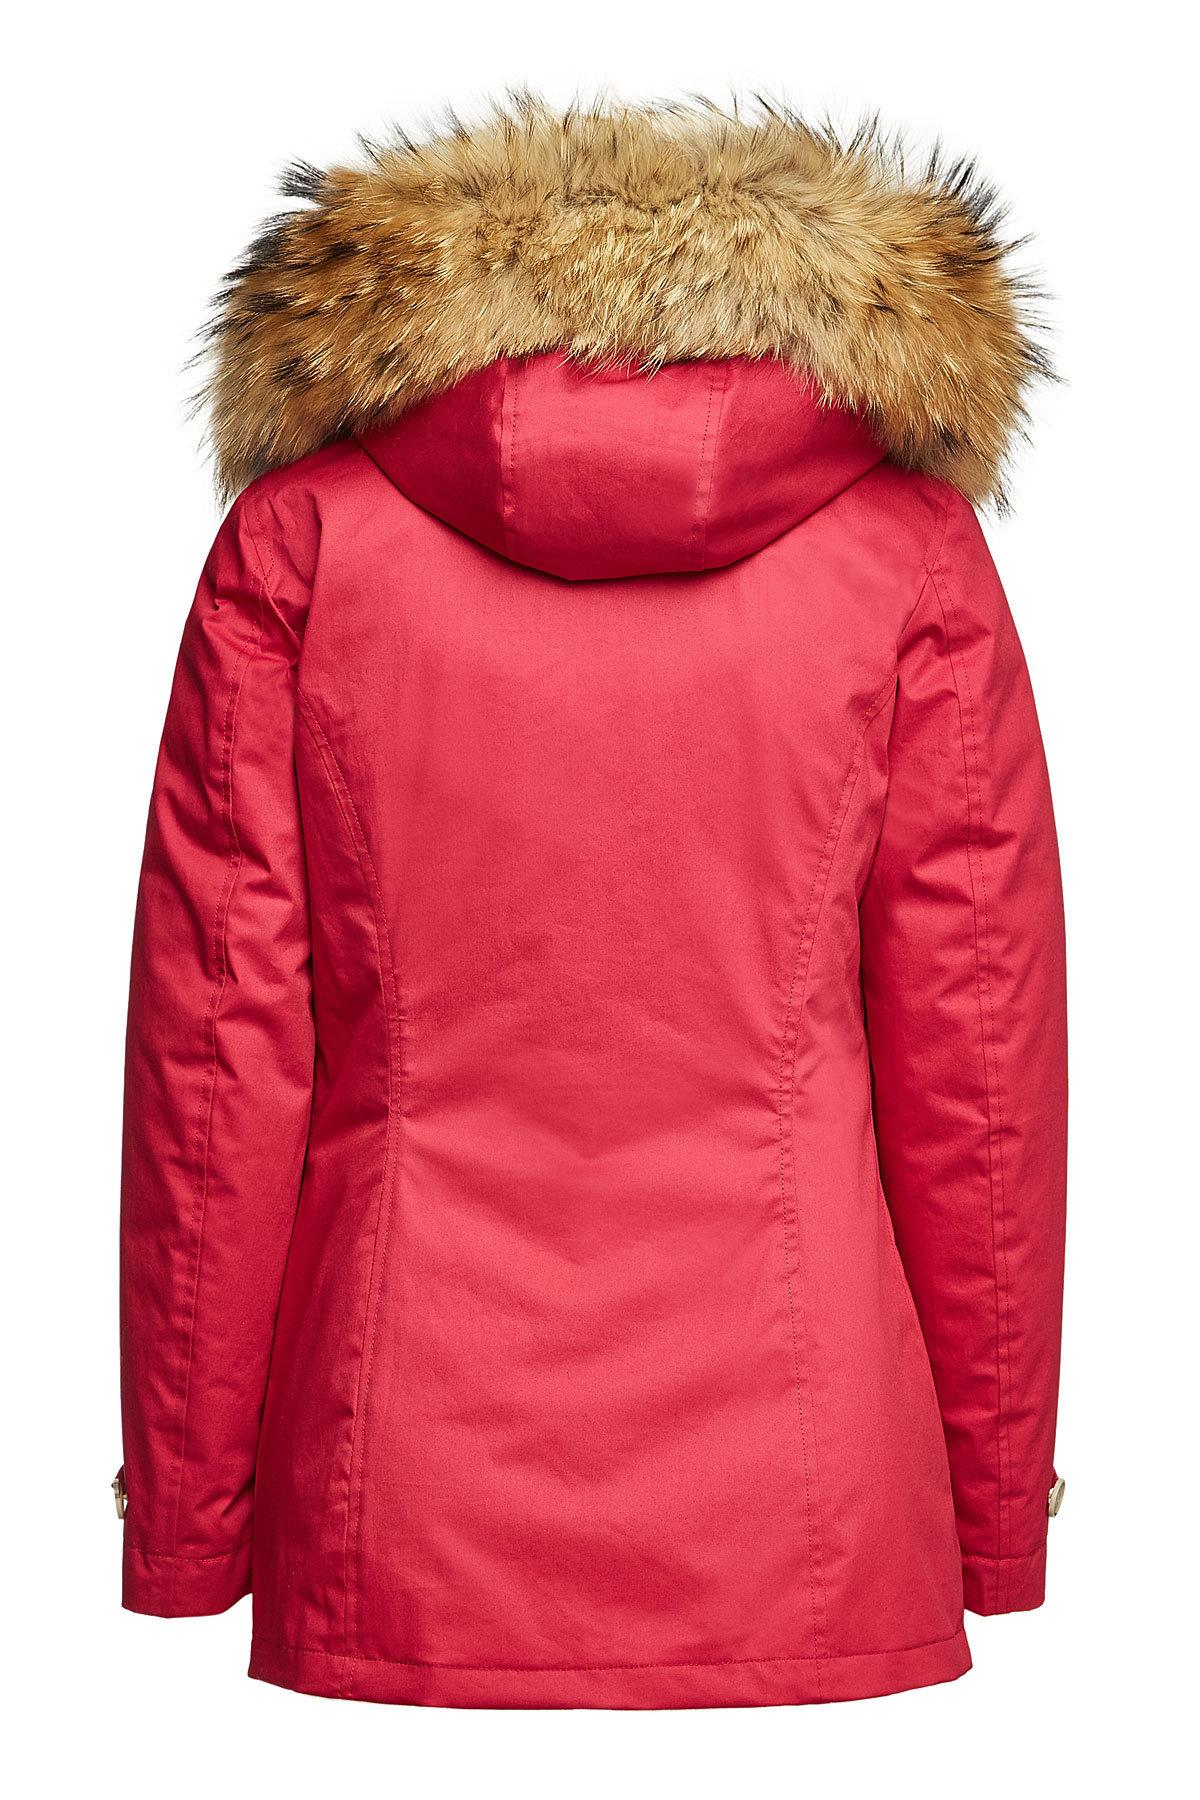 6764cfd16 Lyst - Woolrich 3-in-1 Arctic Cotton Down Parka With Fur-trimmed ...